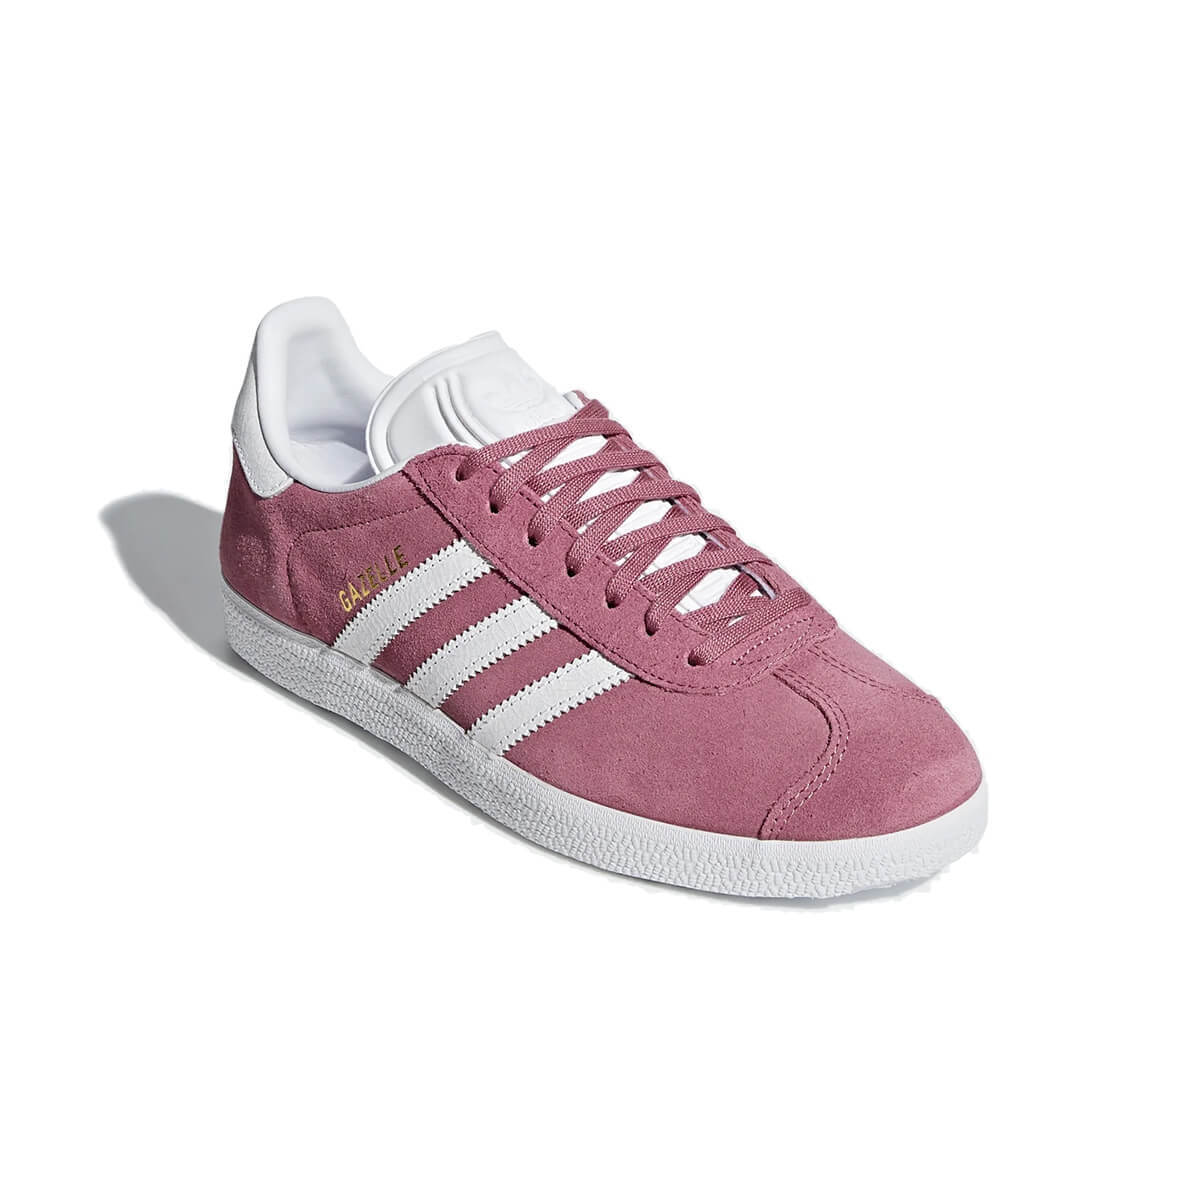 421da6c0620 New Adidas Originals Gazelle Women Suede Fashion Shoe Pink White ...